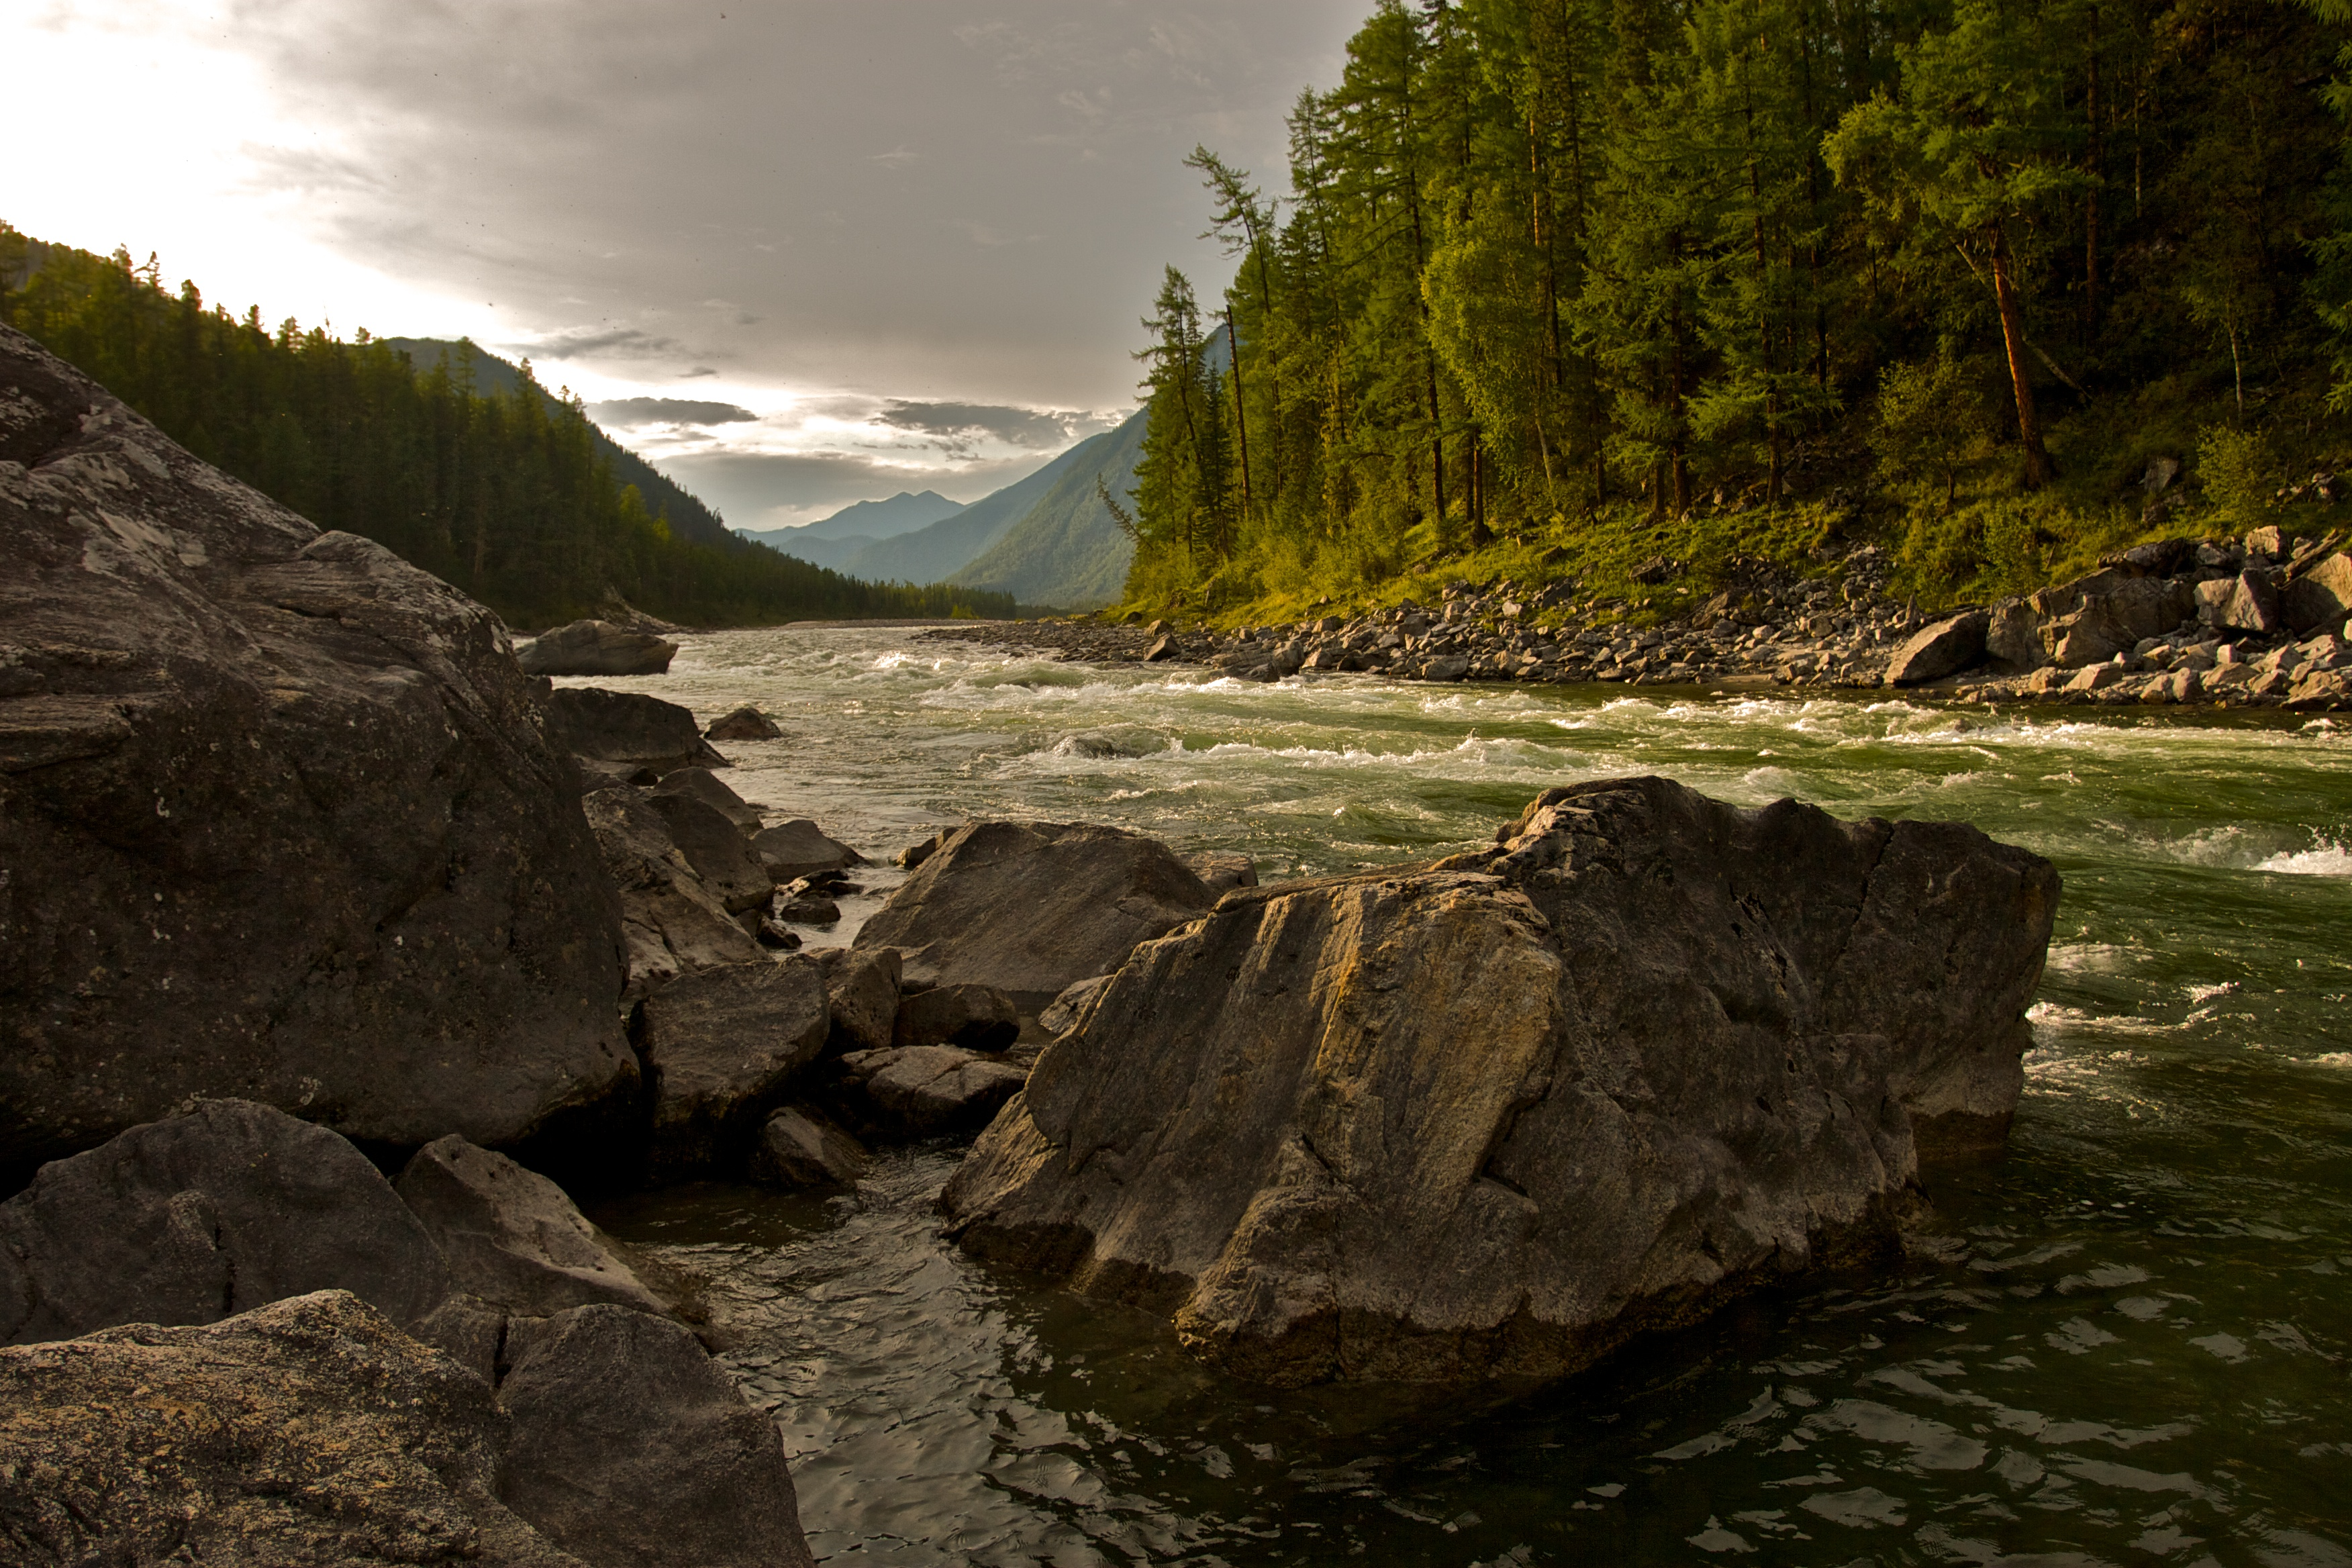 Scenic river with whitewater photo